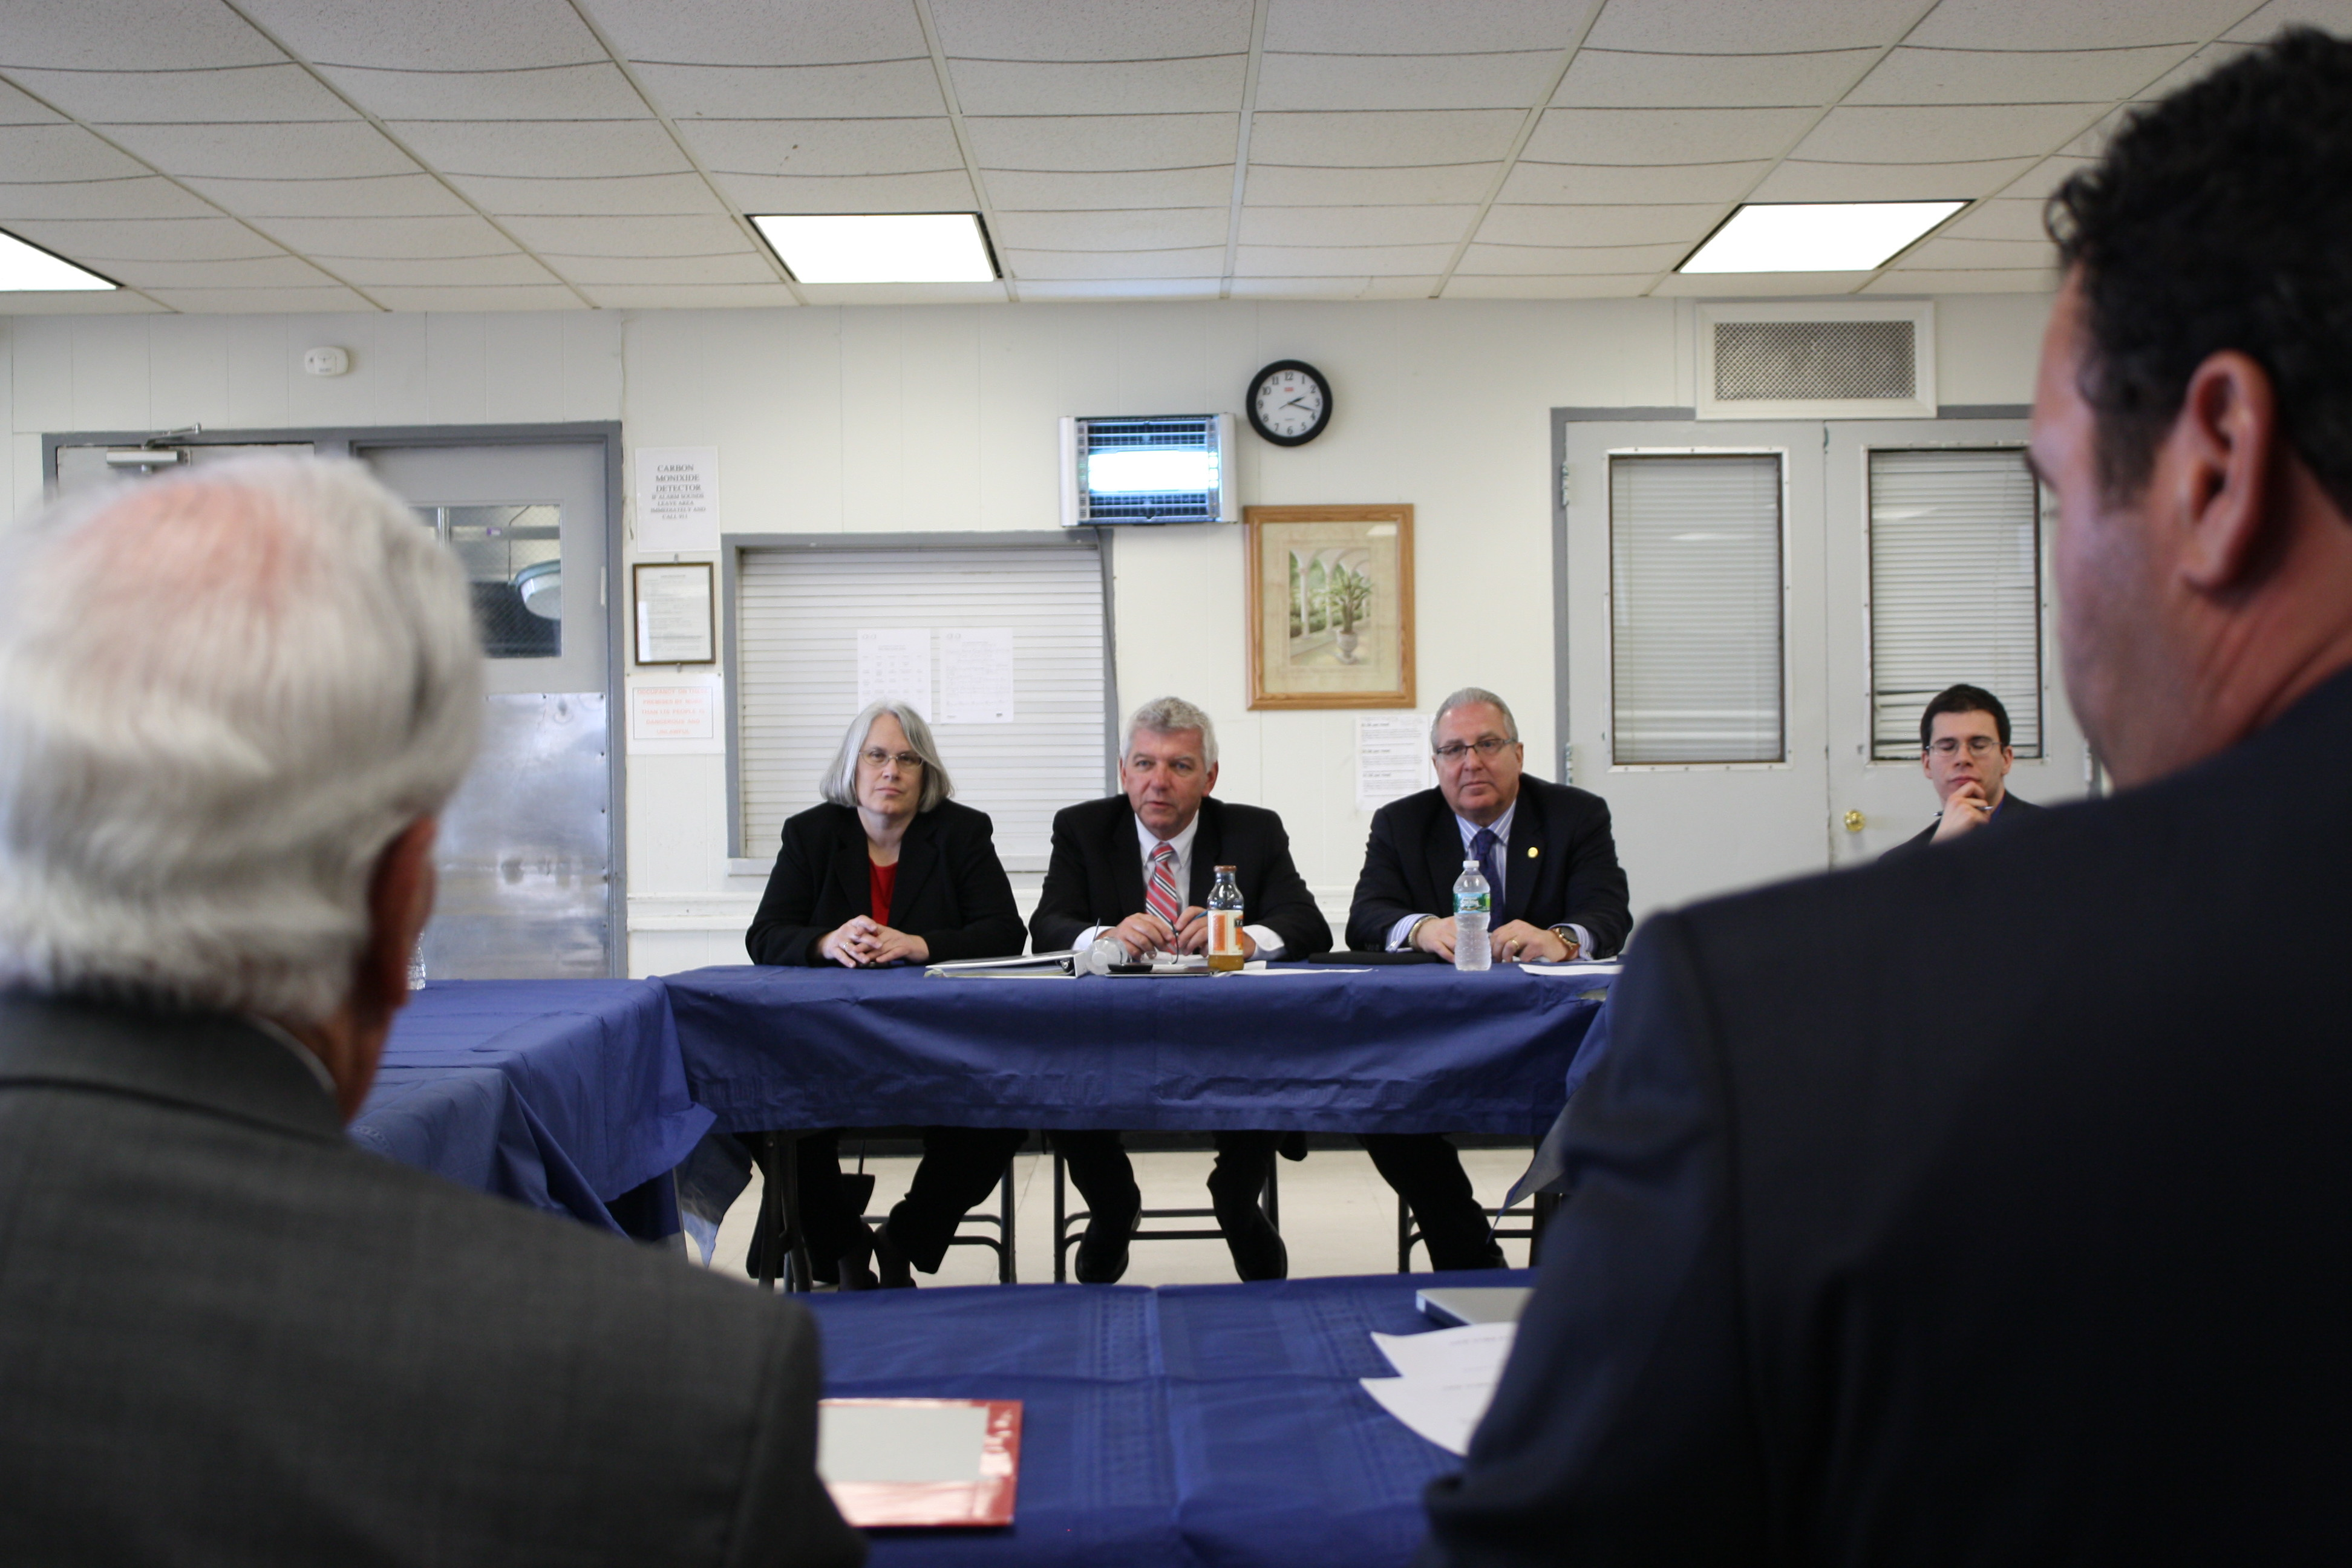 Assembly Insurance Committee Chair Kevin Cahill conducts a roundtable discussion on insurance issues in the wake of Superstorm Sandy alongside Assemblymember Steven Cymbrowitz (right) and Assemblymemb